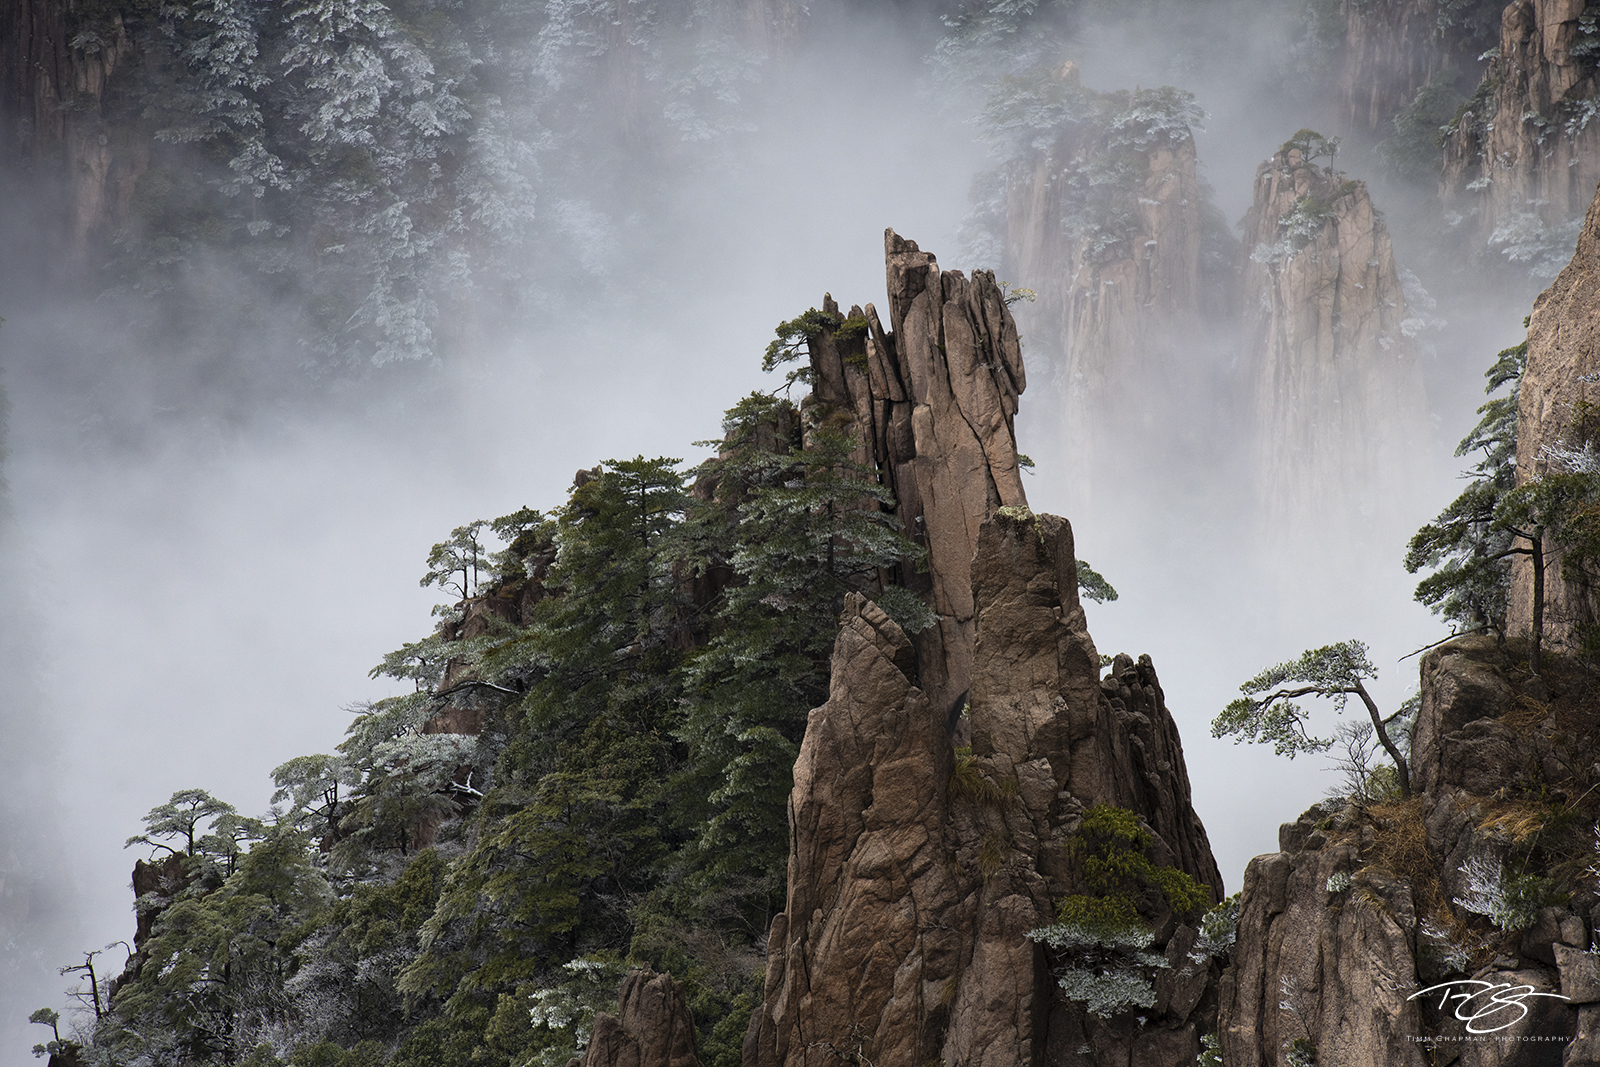 The mystical land of Huangshan gave inspiration for the fictiitous world of Pandora